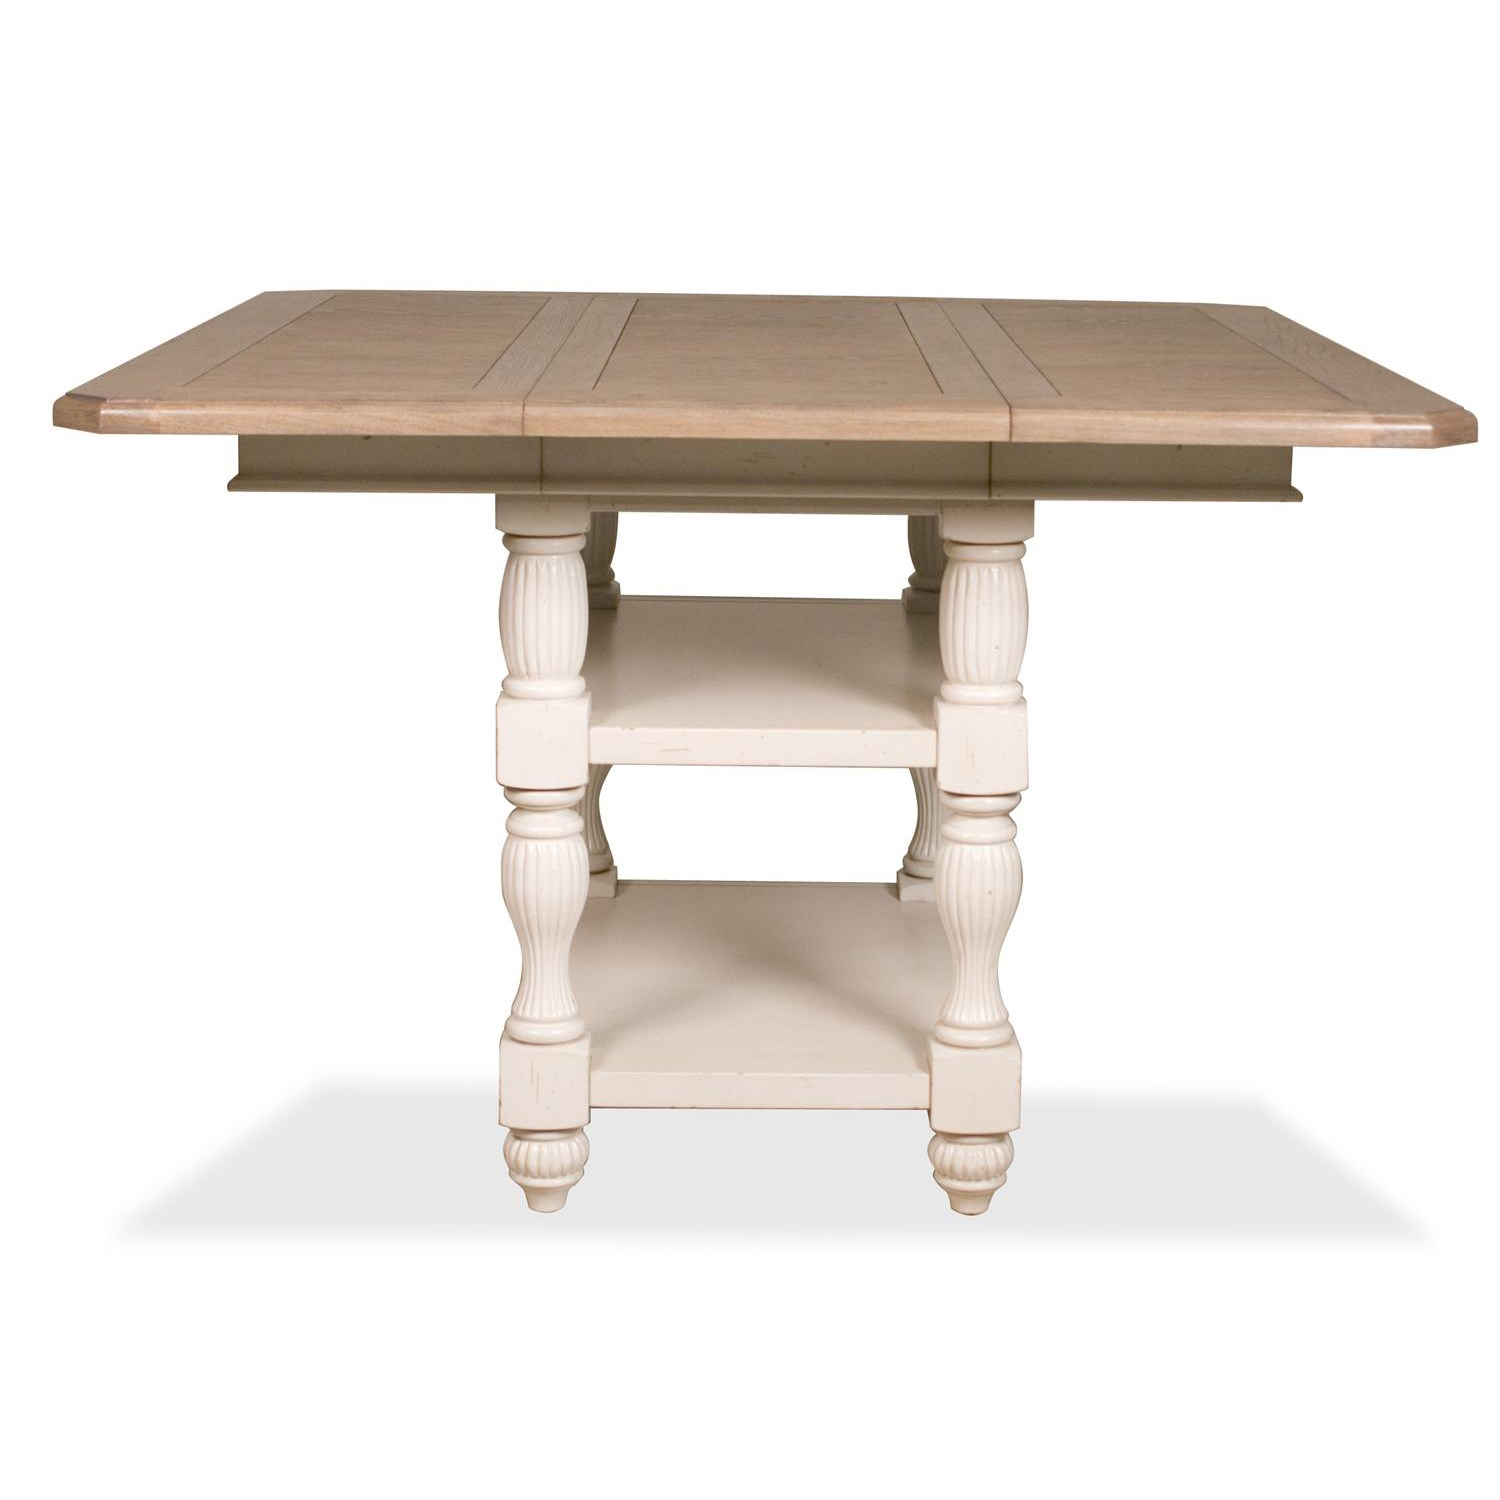 Dining tables for two